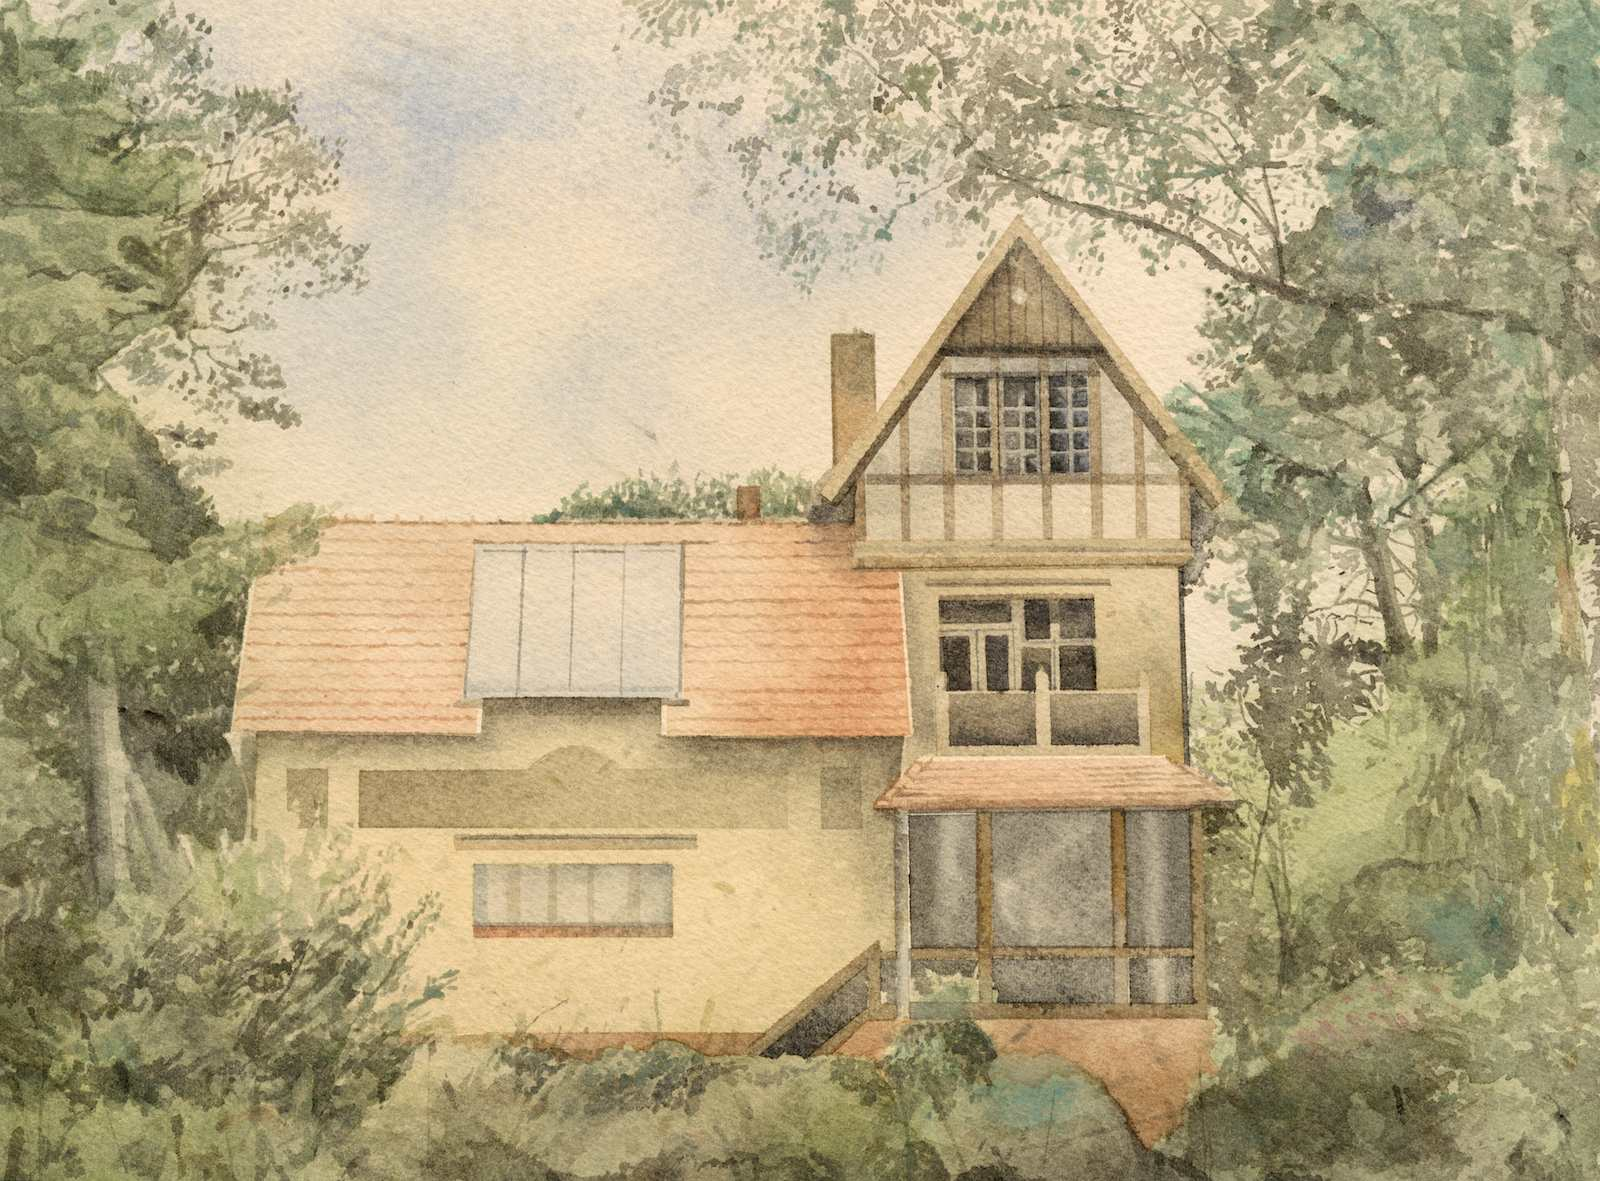 From the series Back to Nature in Germany (Fidushaus Woltersdorf), 2015-2016, watercolour on paper, 23,6 x 31,9 cm